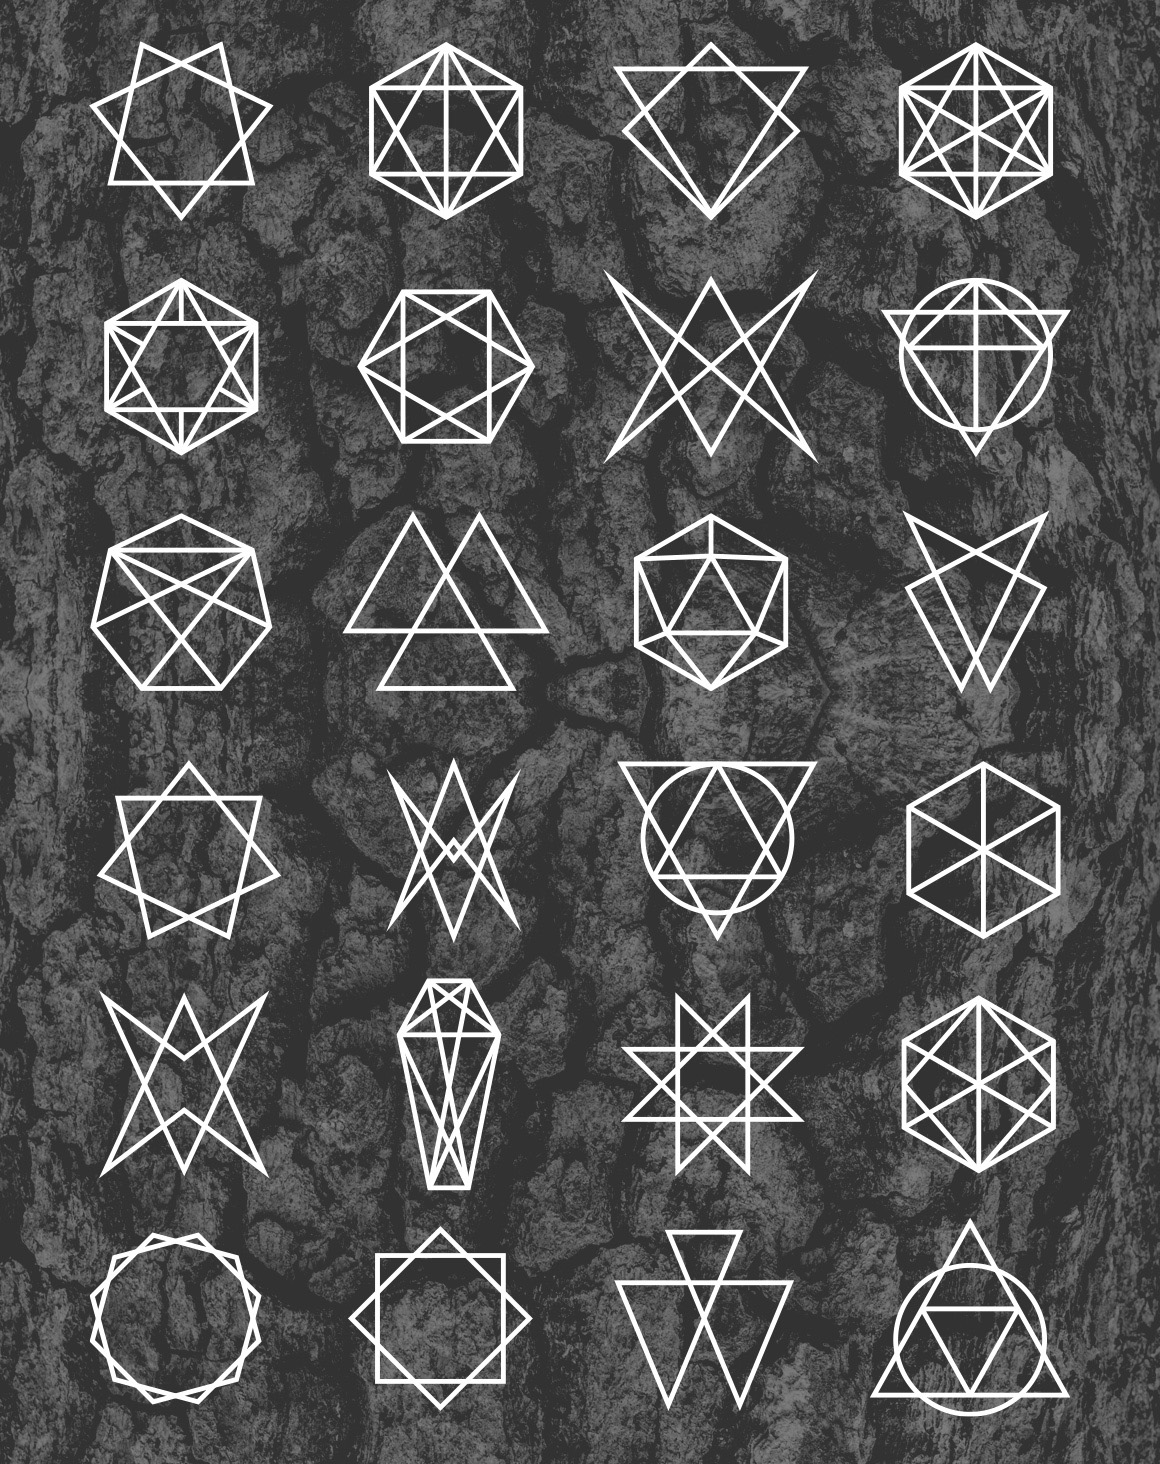 Popular Occult Symbols And Their Meanings Astronlogia